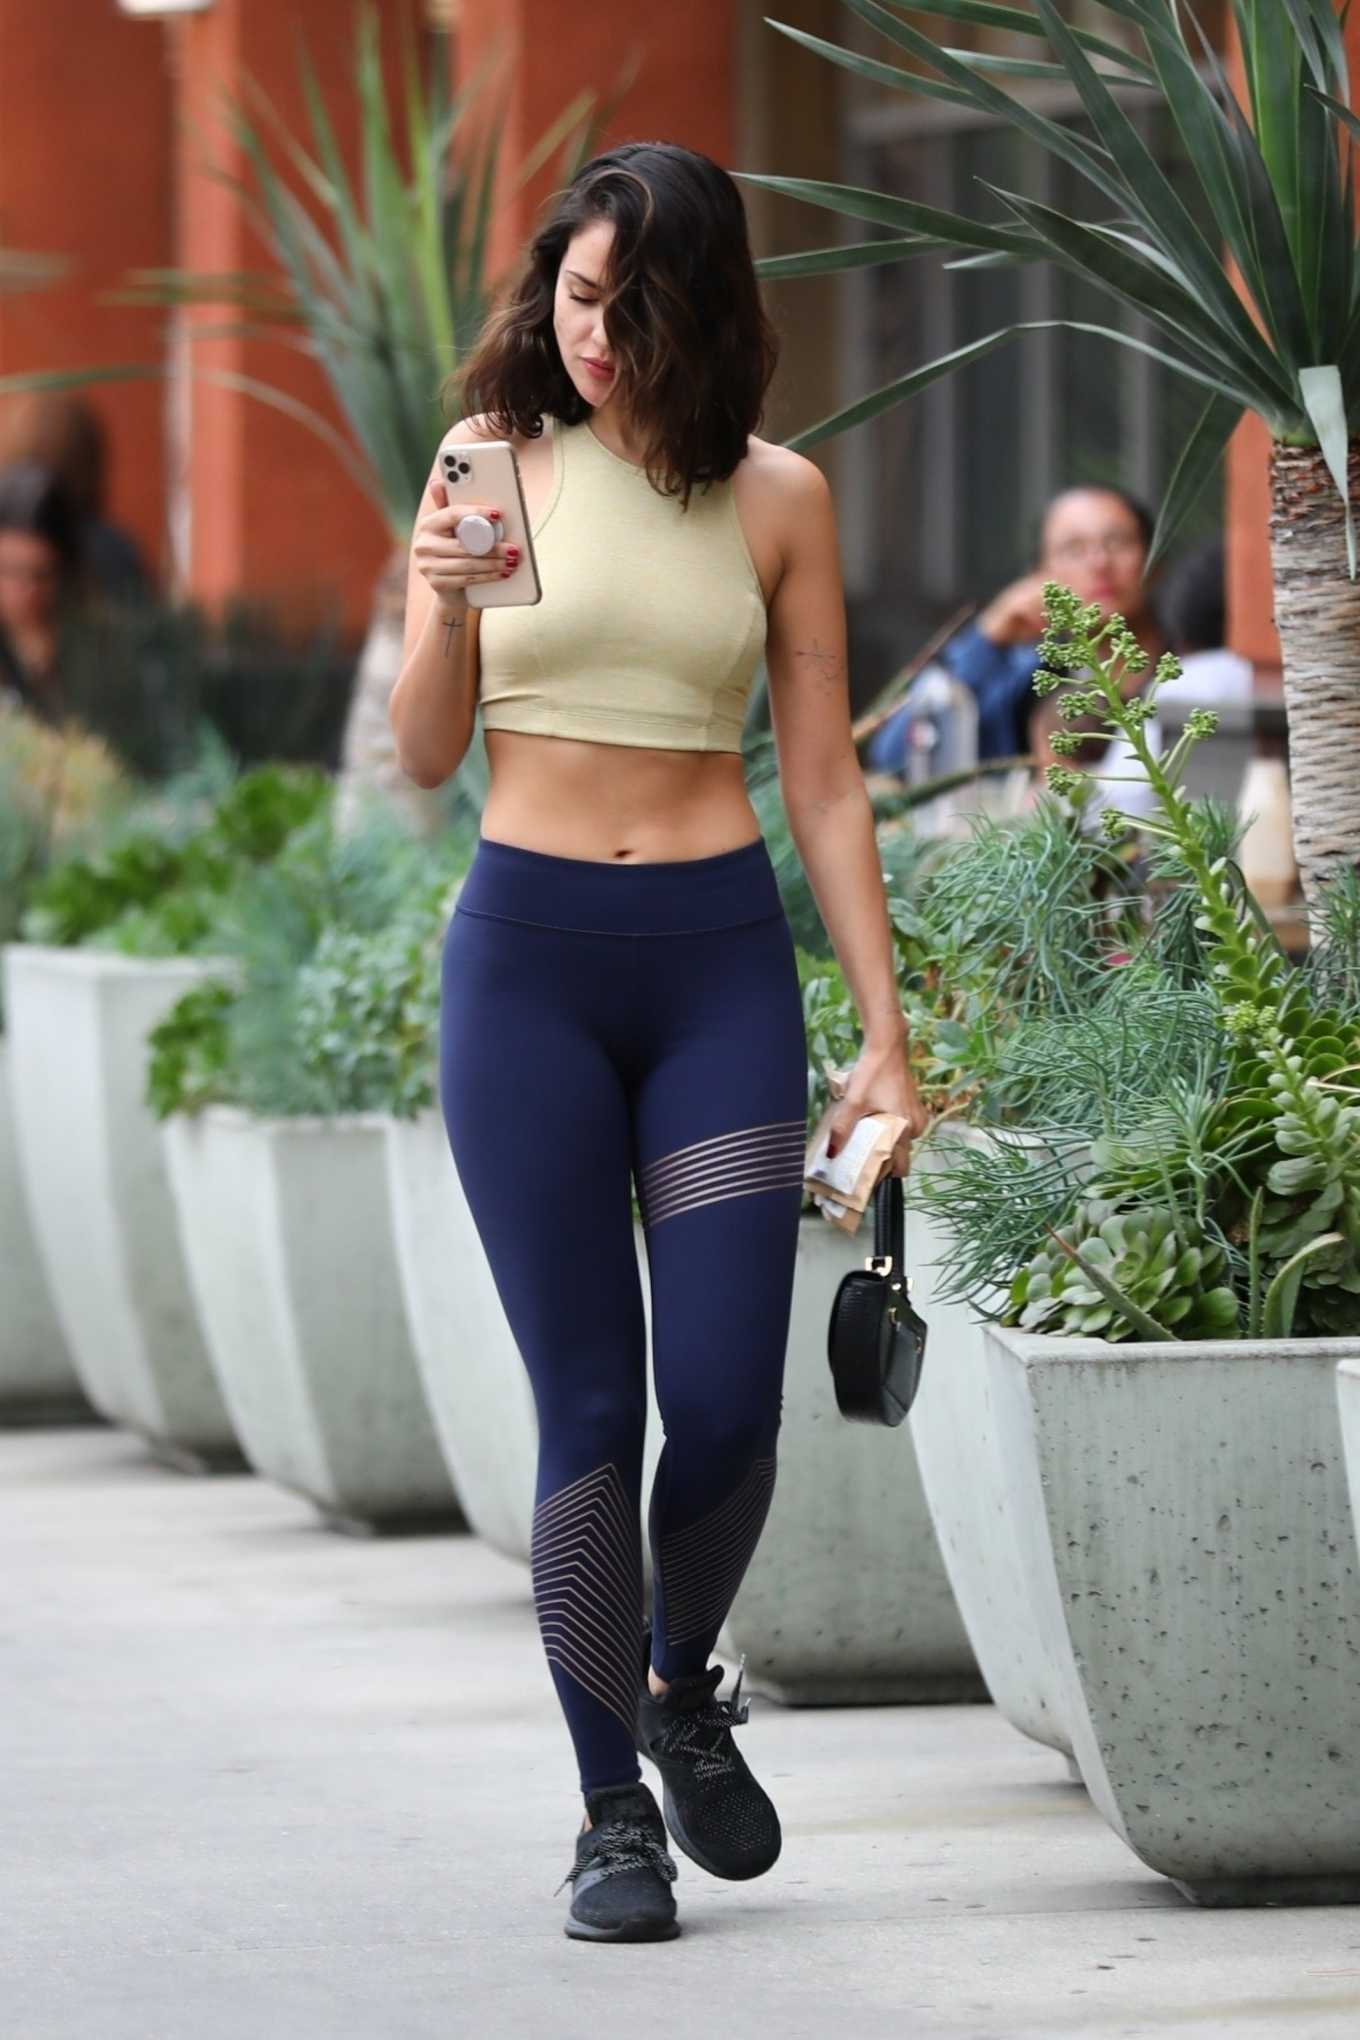 Eiza Gonzalez - In leggings seen leaving Erewhon Market in LA